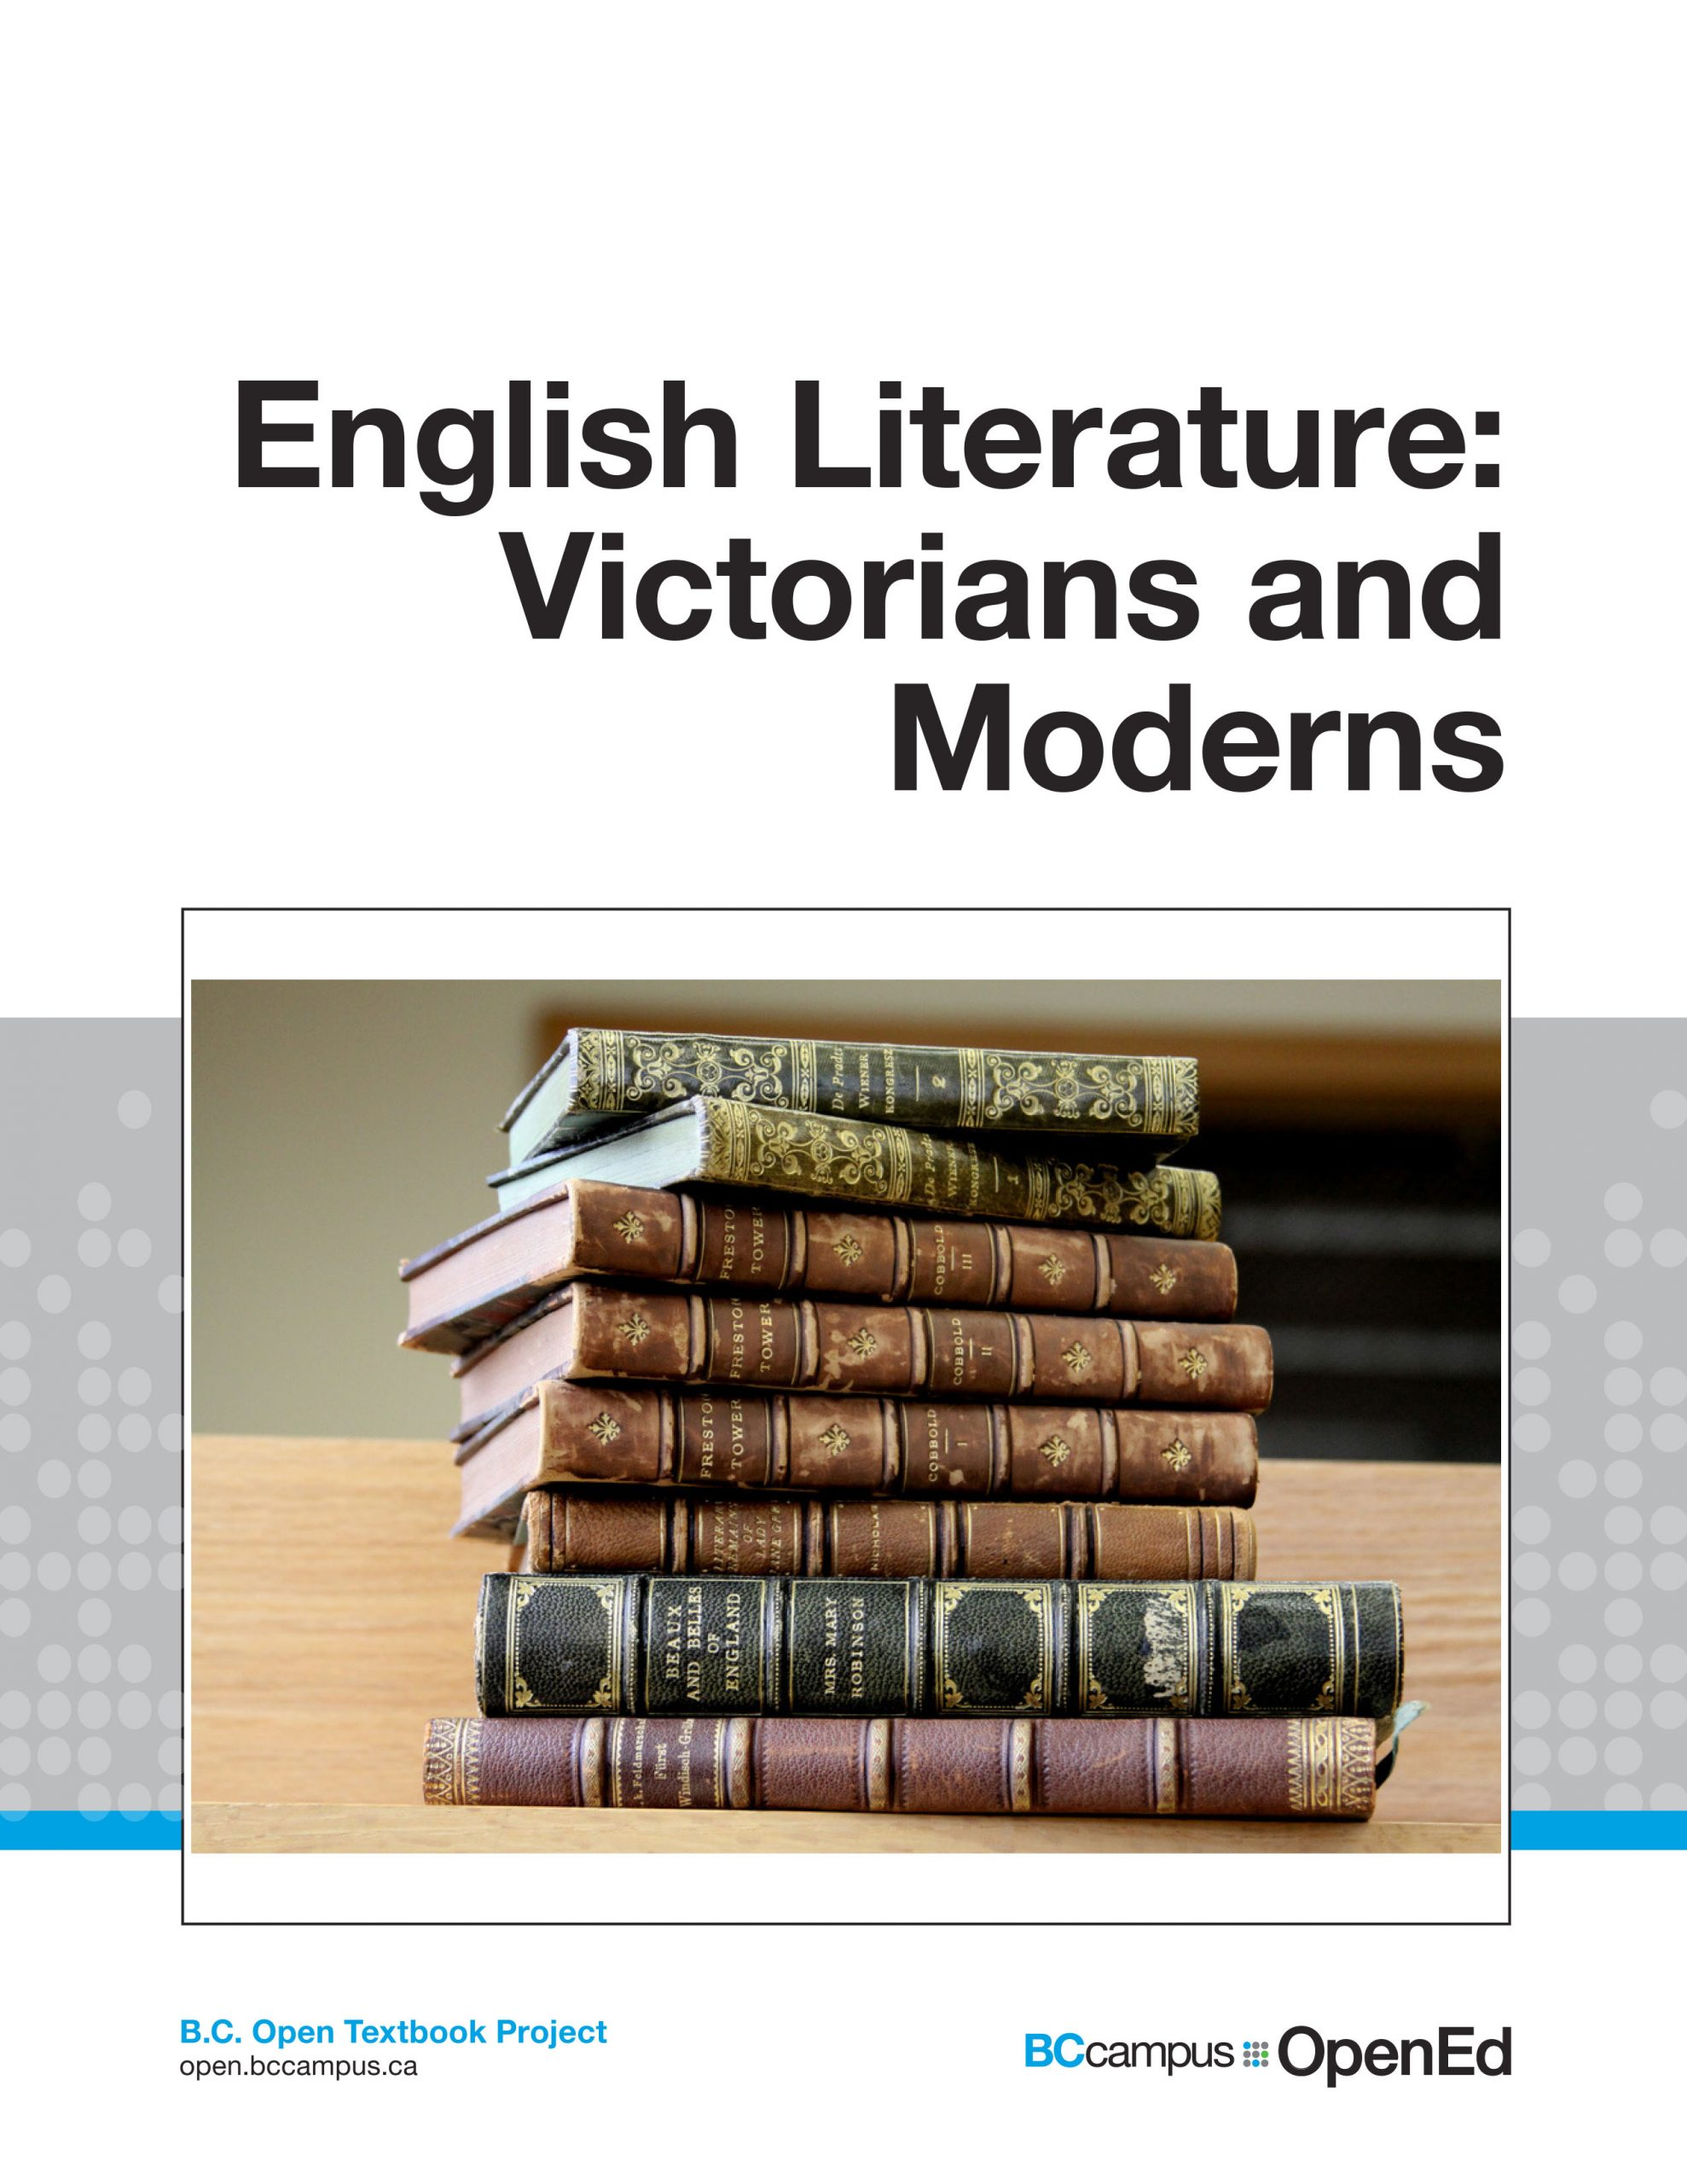 literature textbook cover featuring title and photo of stack of leatherbound, gilded books